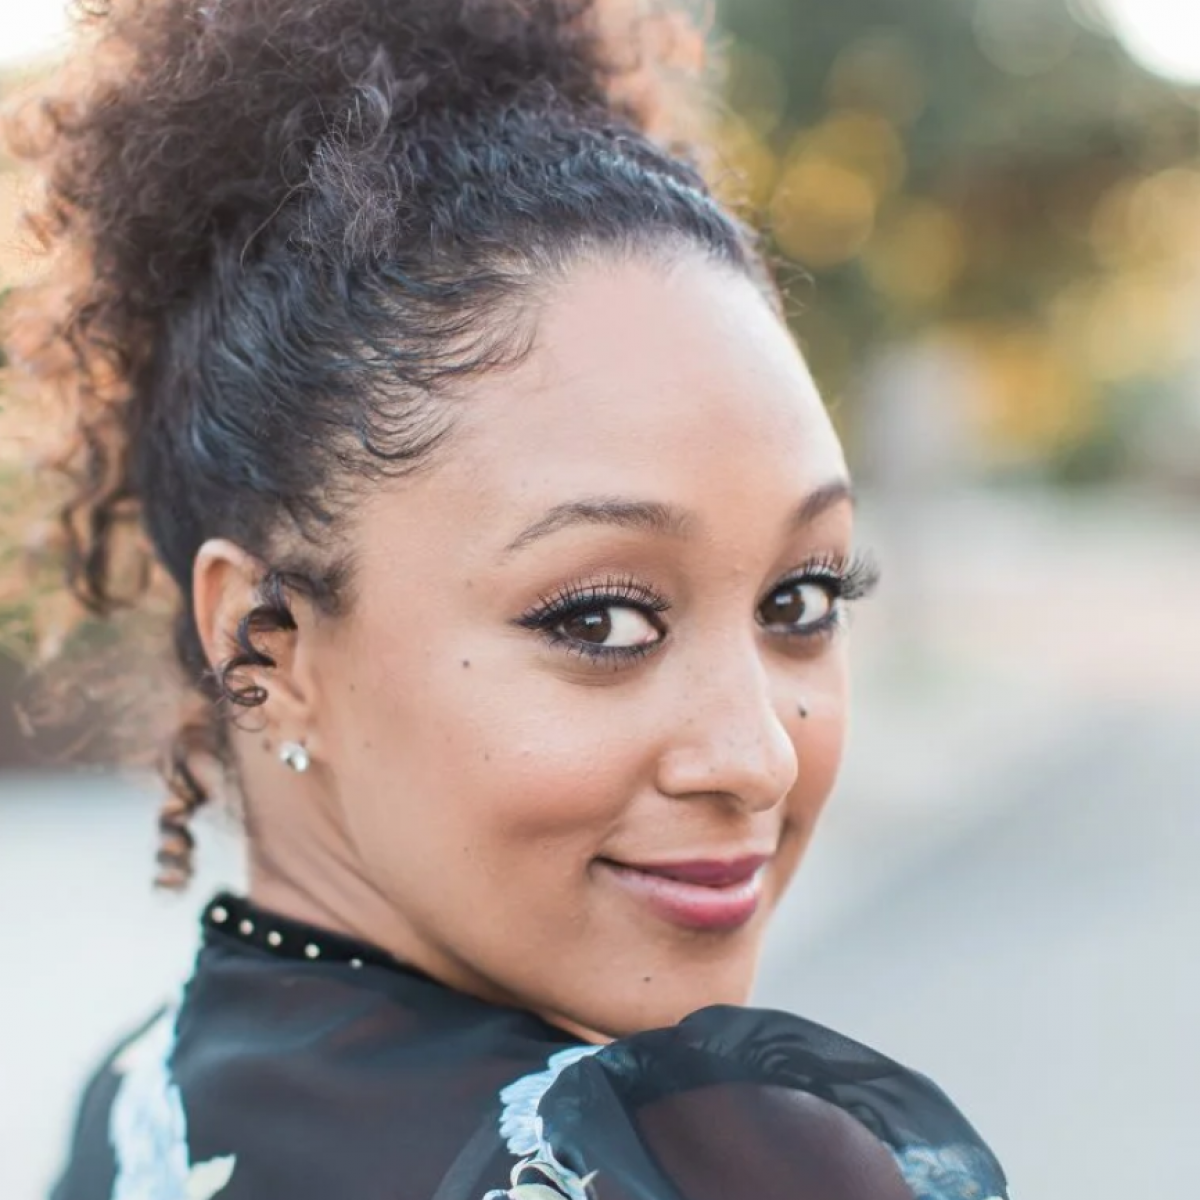 Tamera Mowry-Housely Says Her Mom Fought For Her And Tia To Be Compensated Fairly As Child Actors